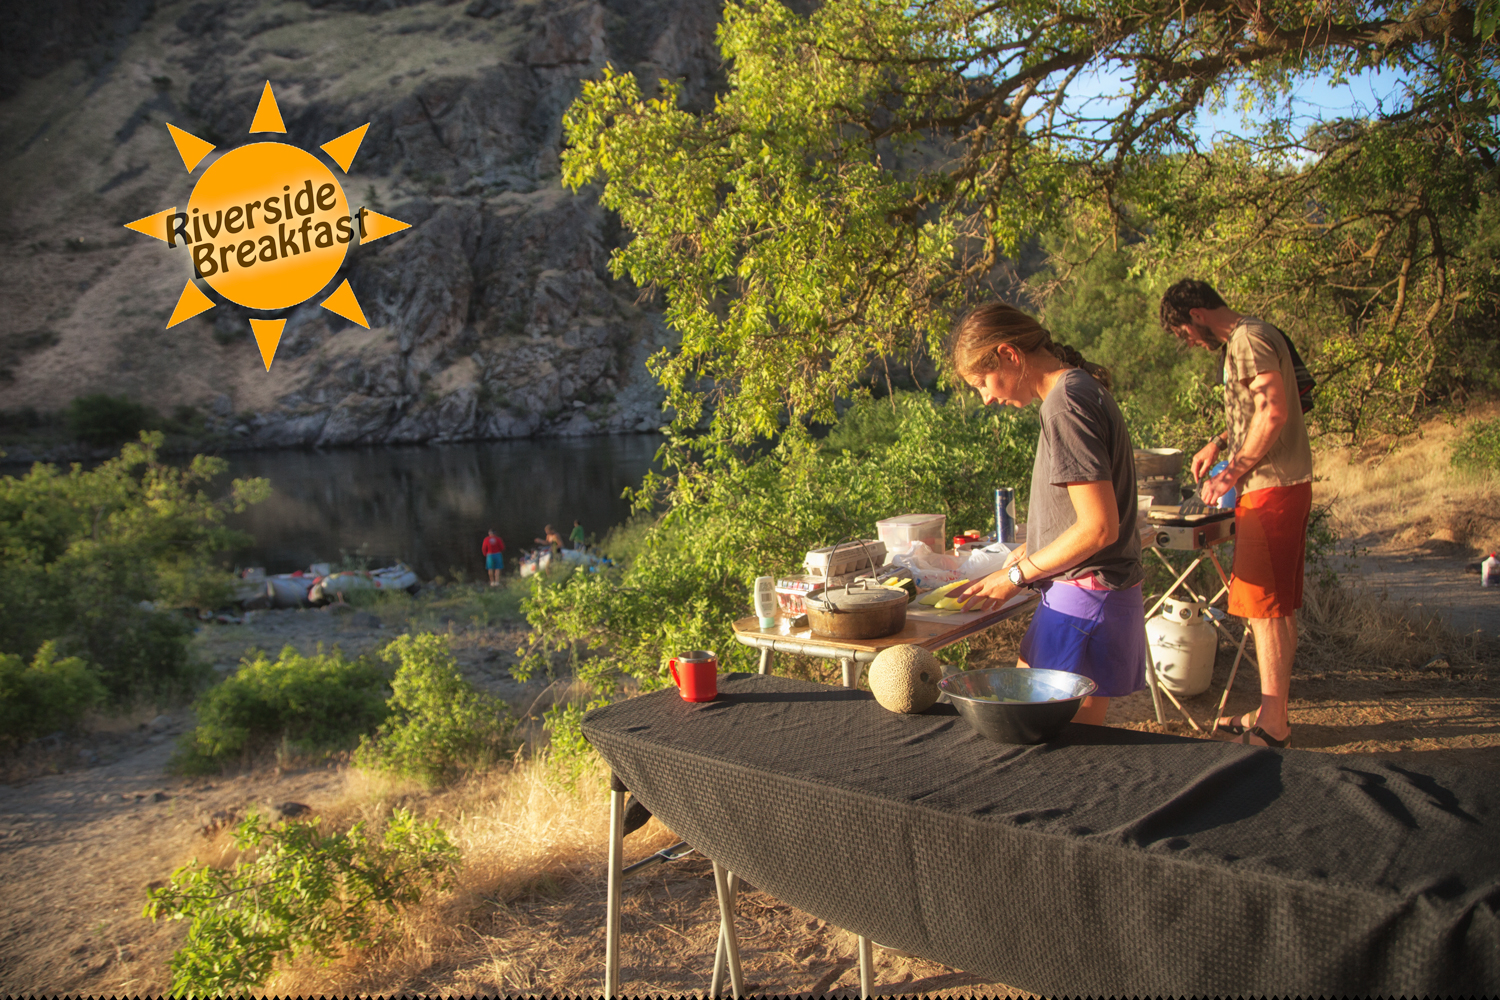 Riverside Dining in Hells Canyon with Hells Canyon Raft via J5MM.com